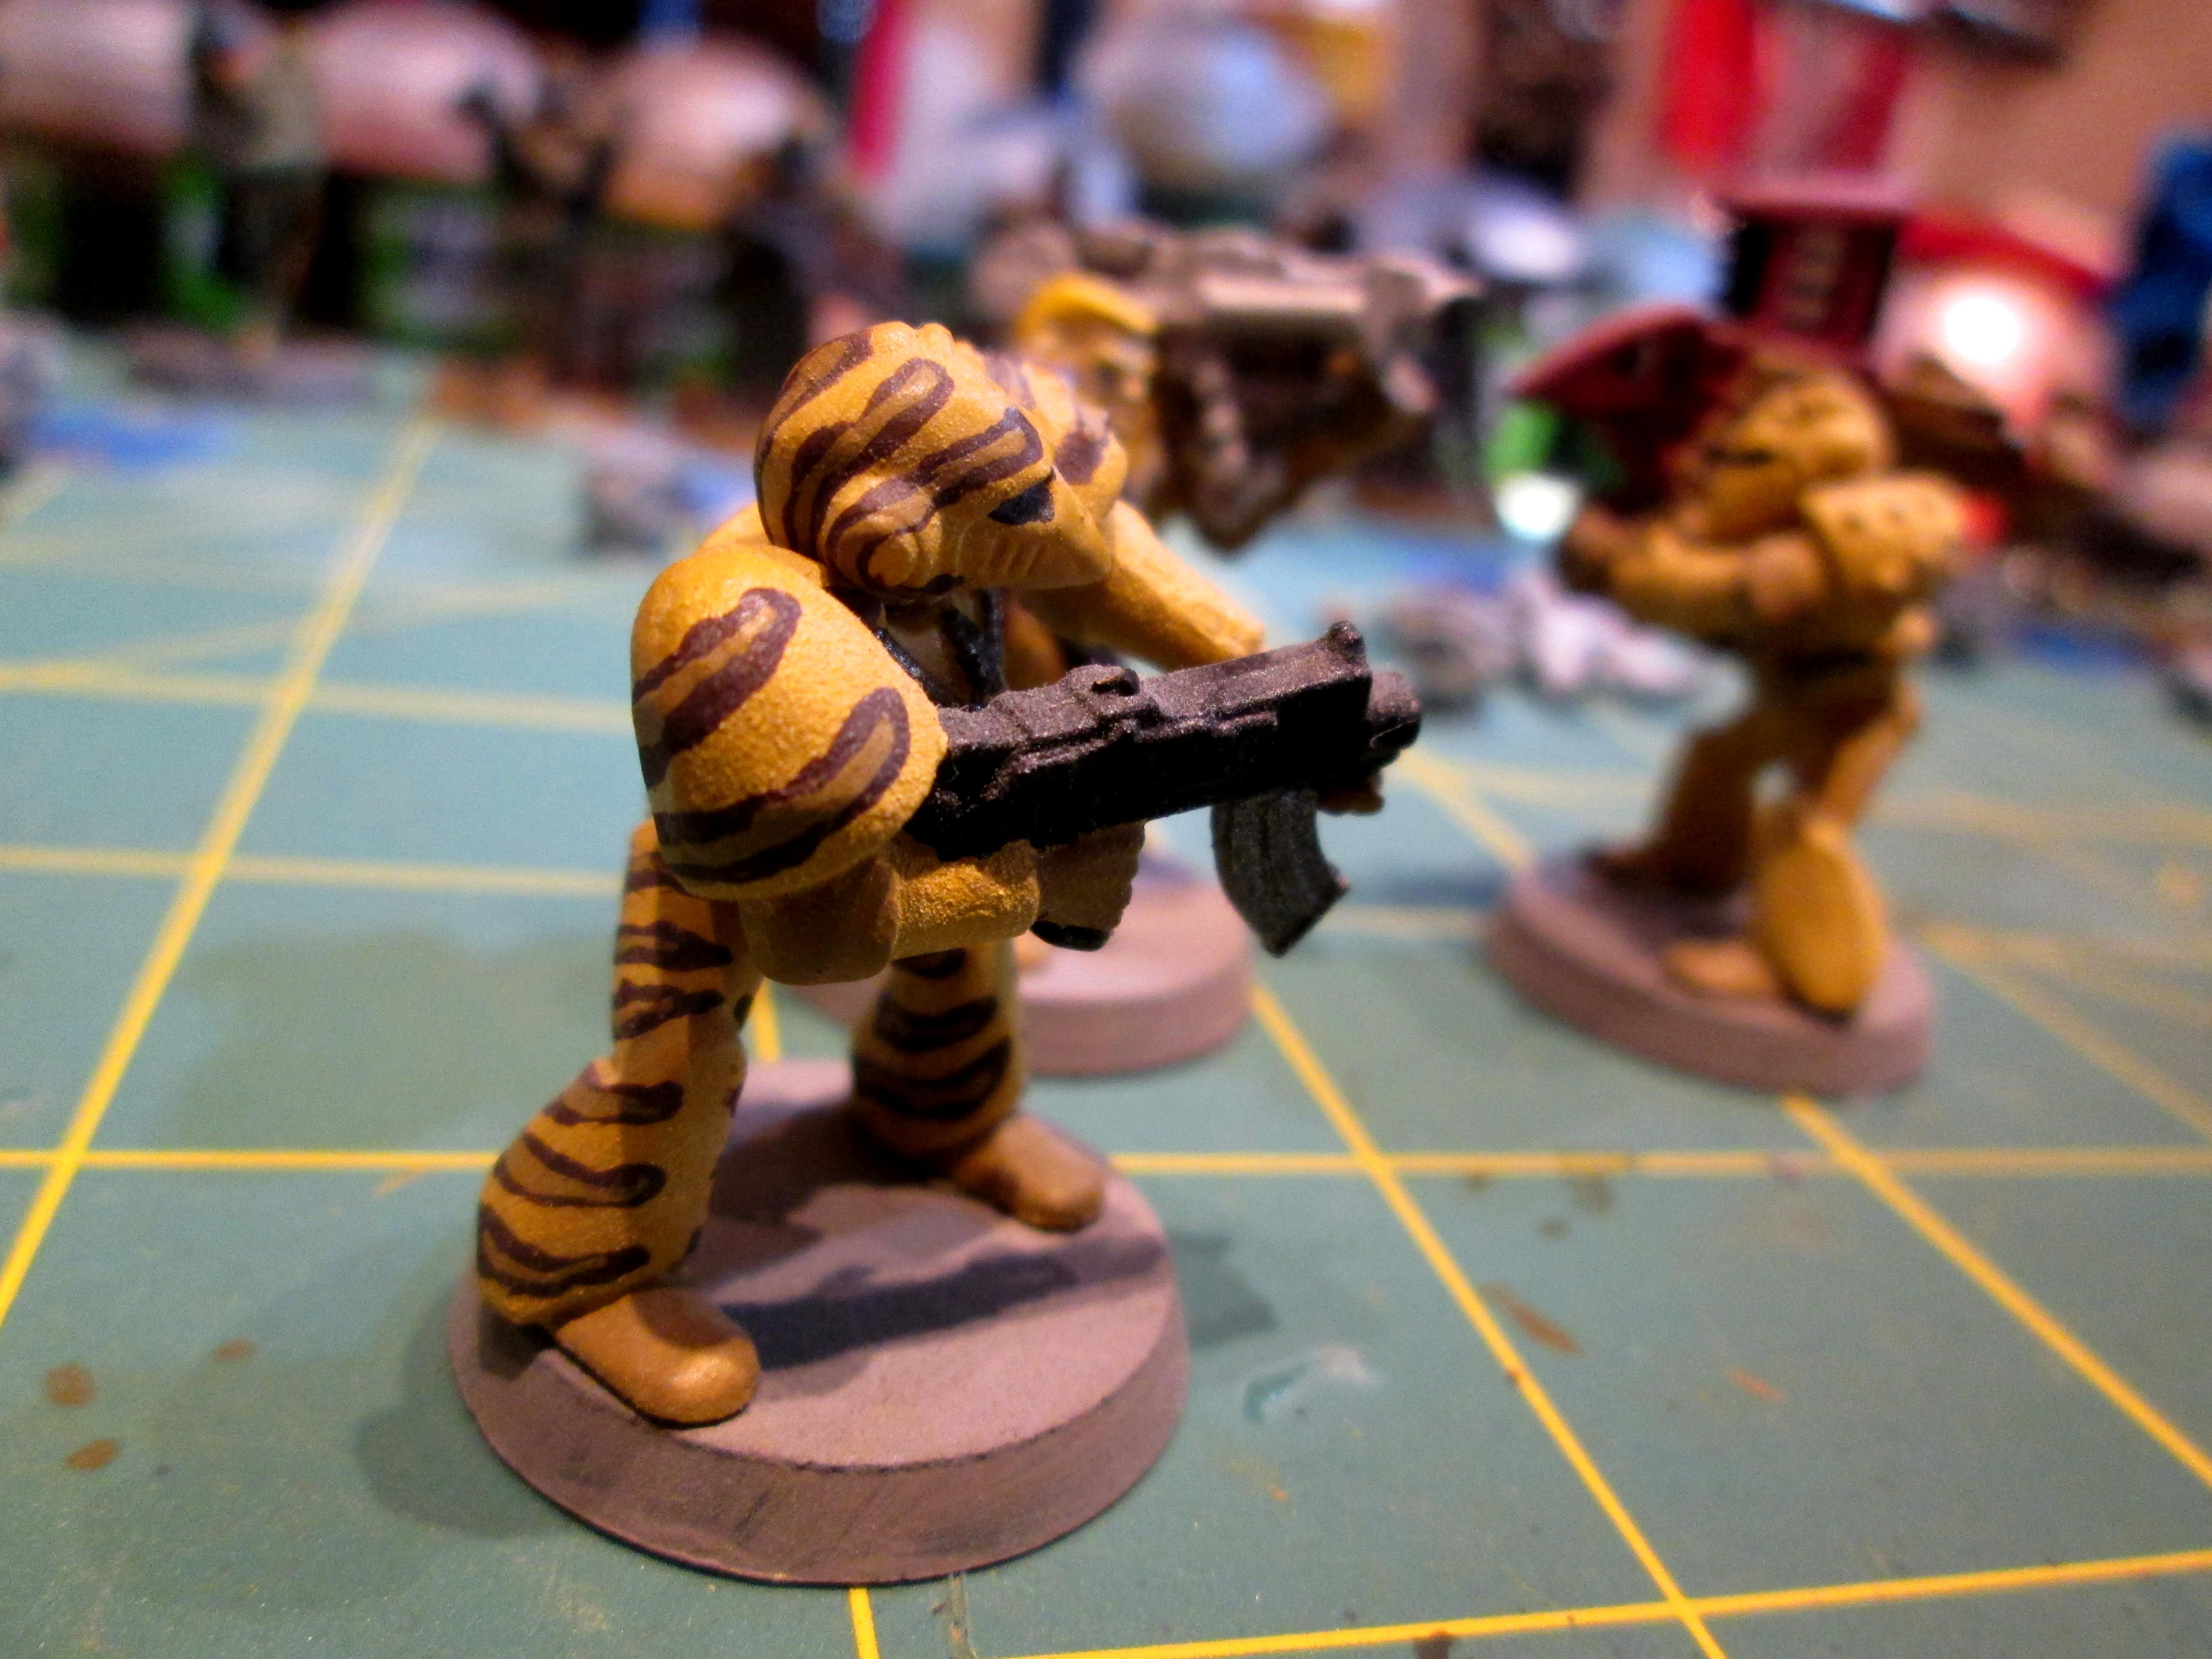 Beakies, Imperial Guard, Rogue Trader, Space Marines, Warhammer 40,000